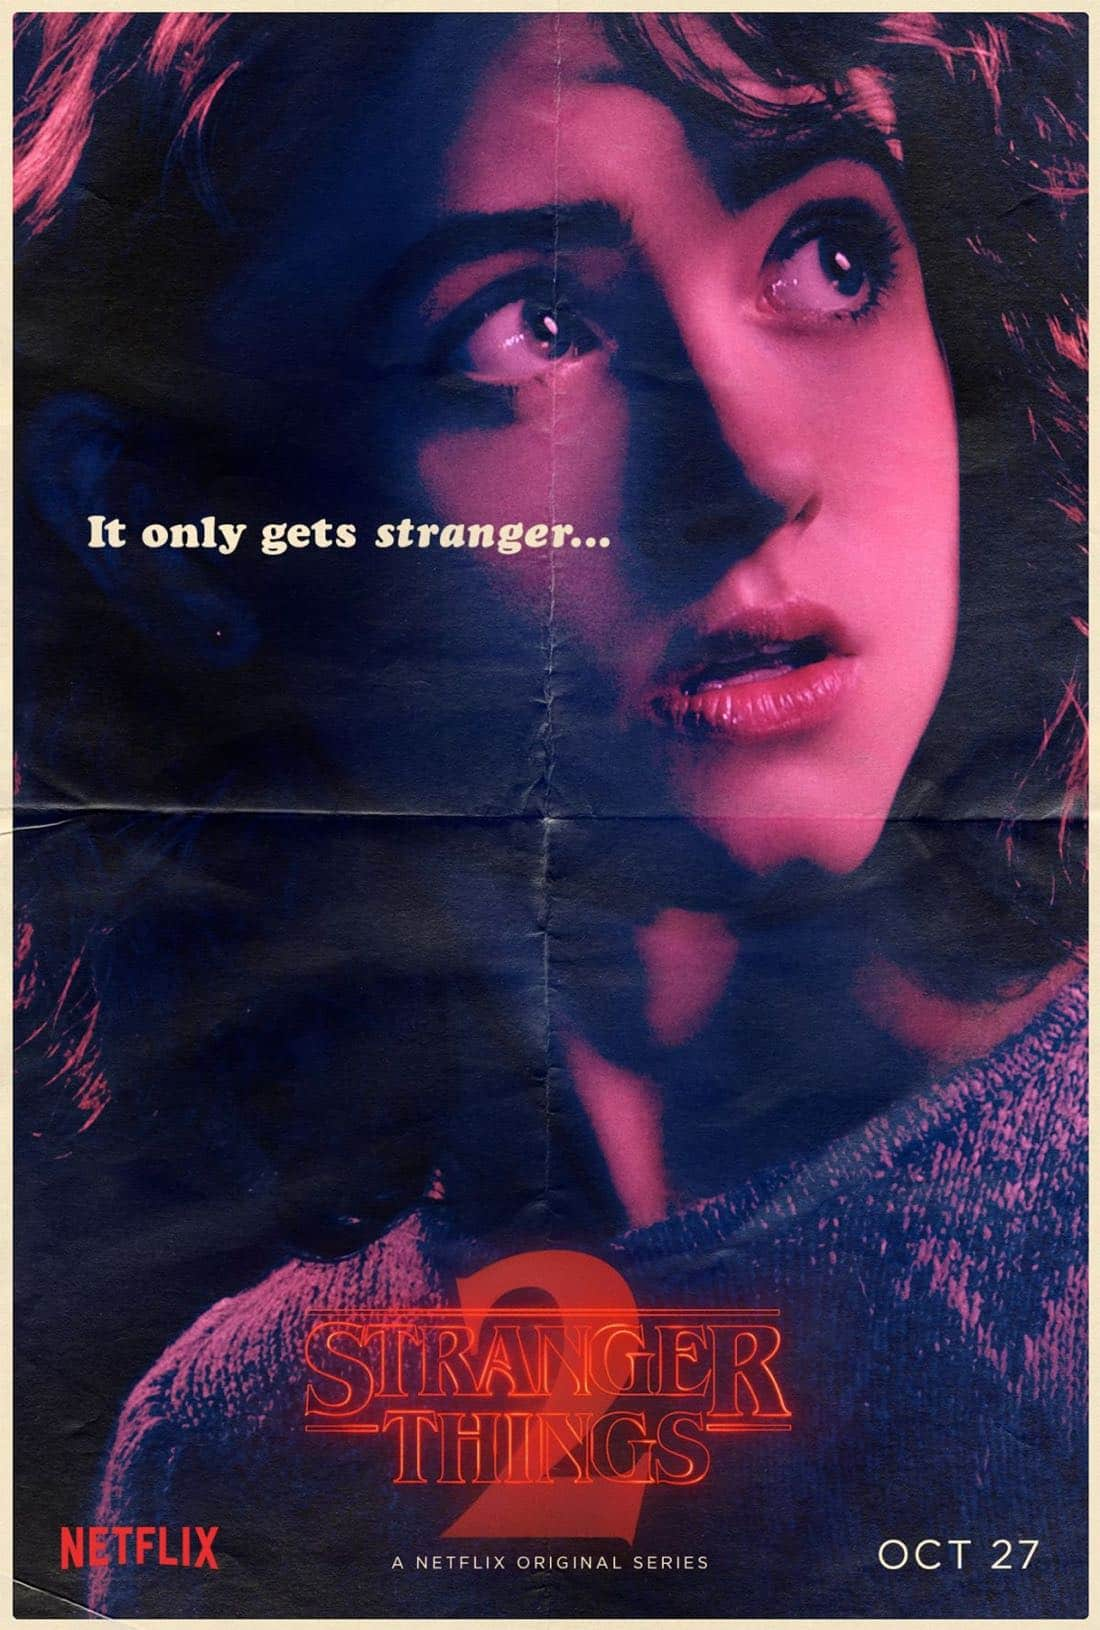 Stranger Things Character Poster - Natalia Dyer - Nancy